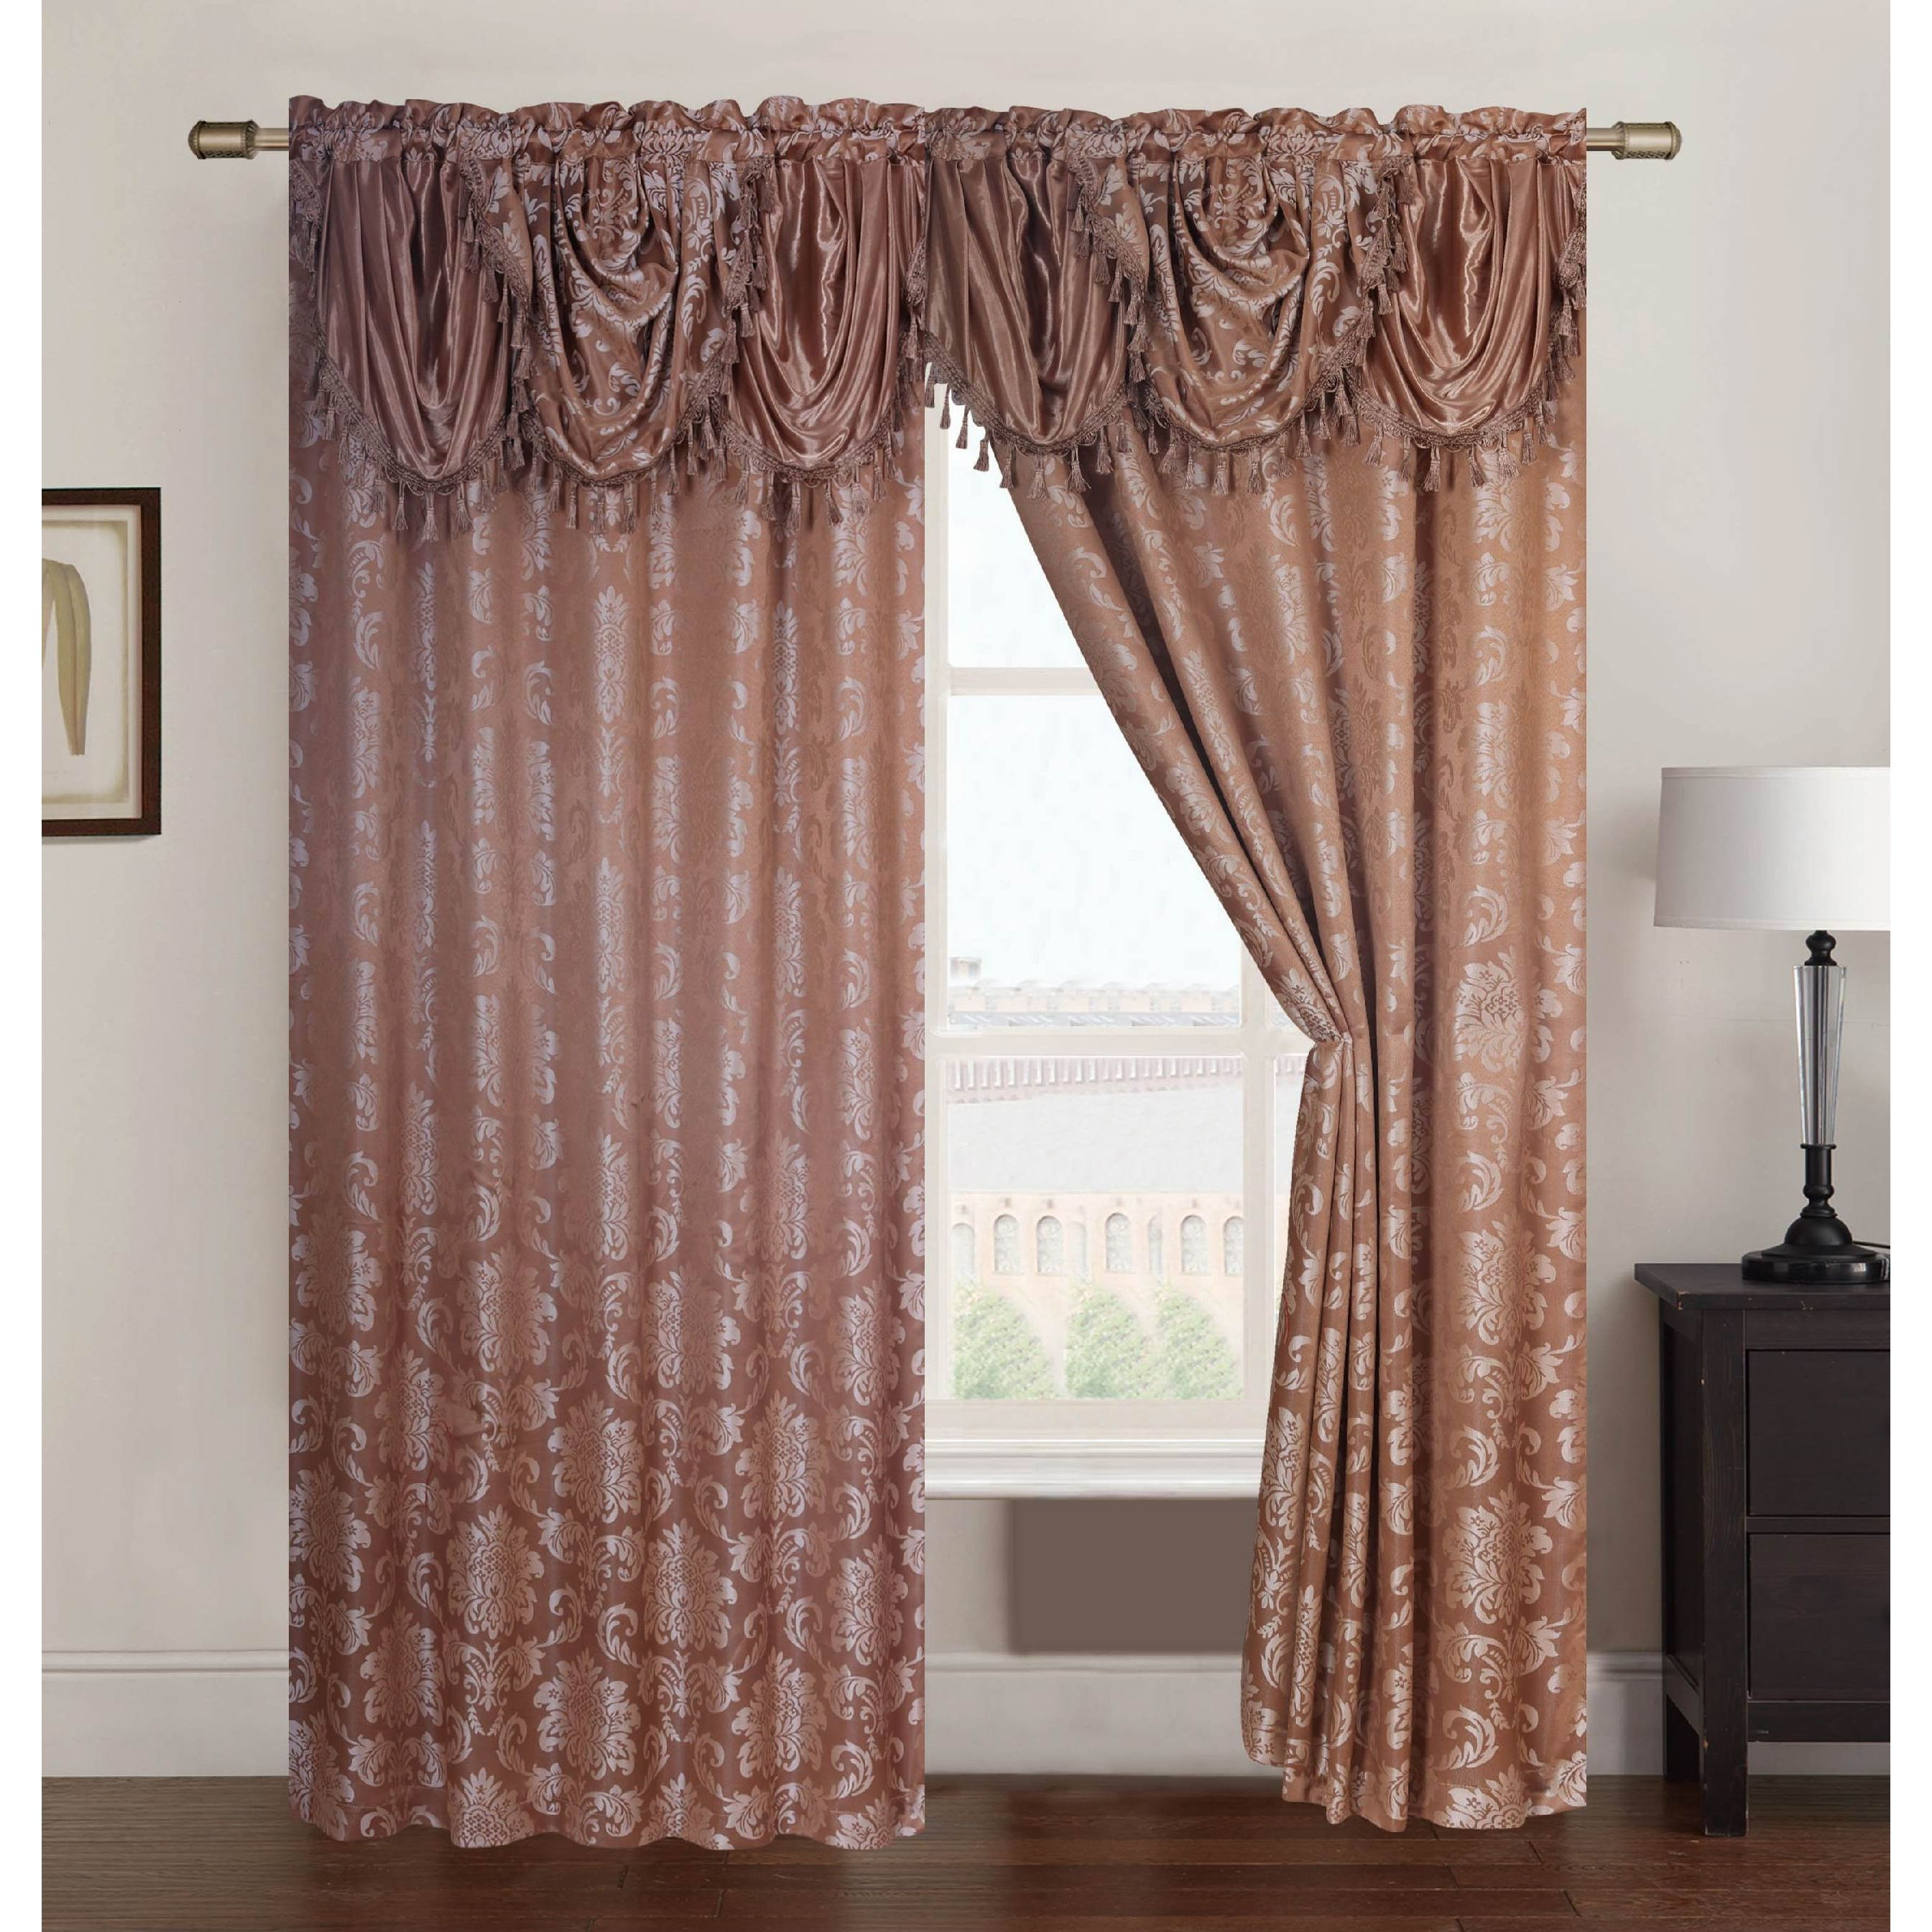 w polyester x dusty single annalise p window elrene drapes rose in l panel curtains curtain